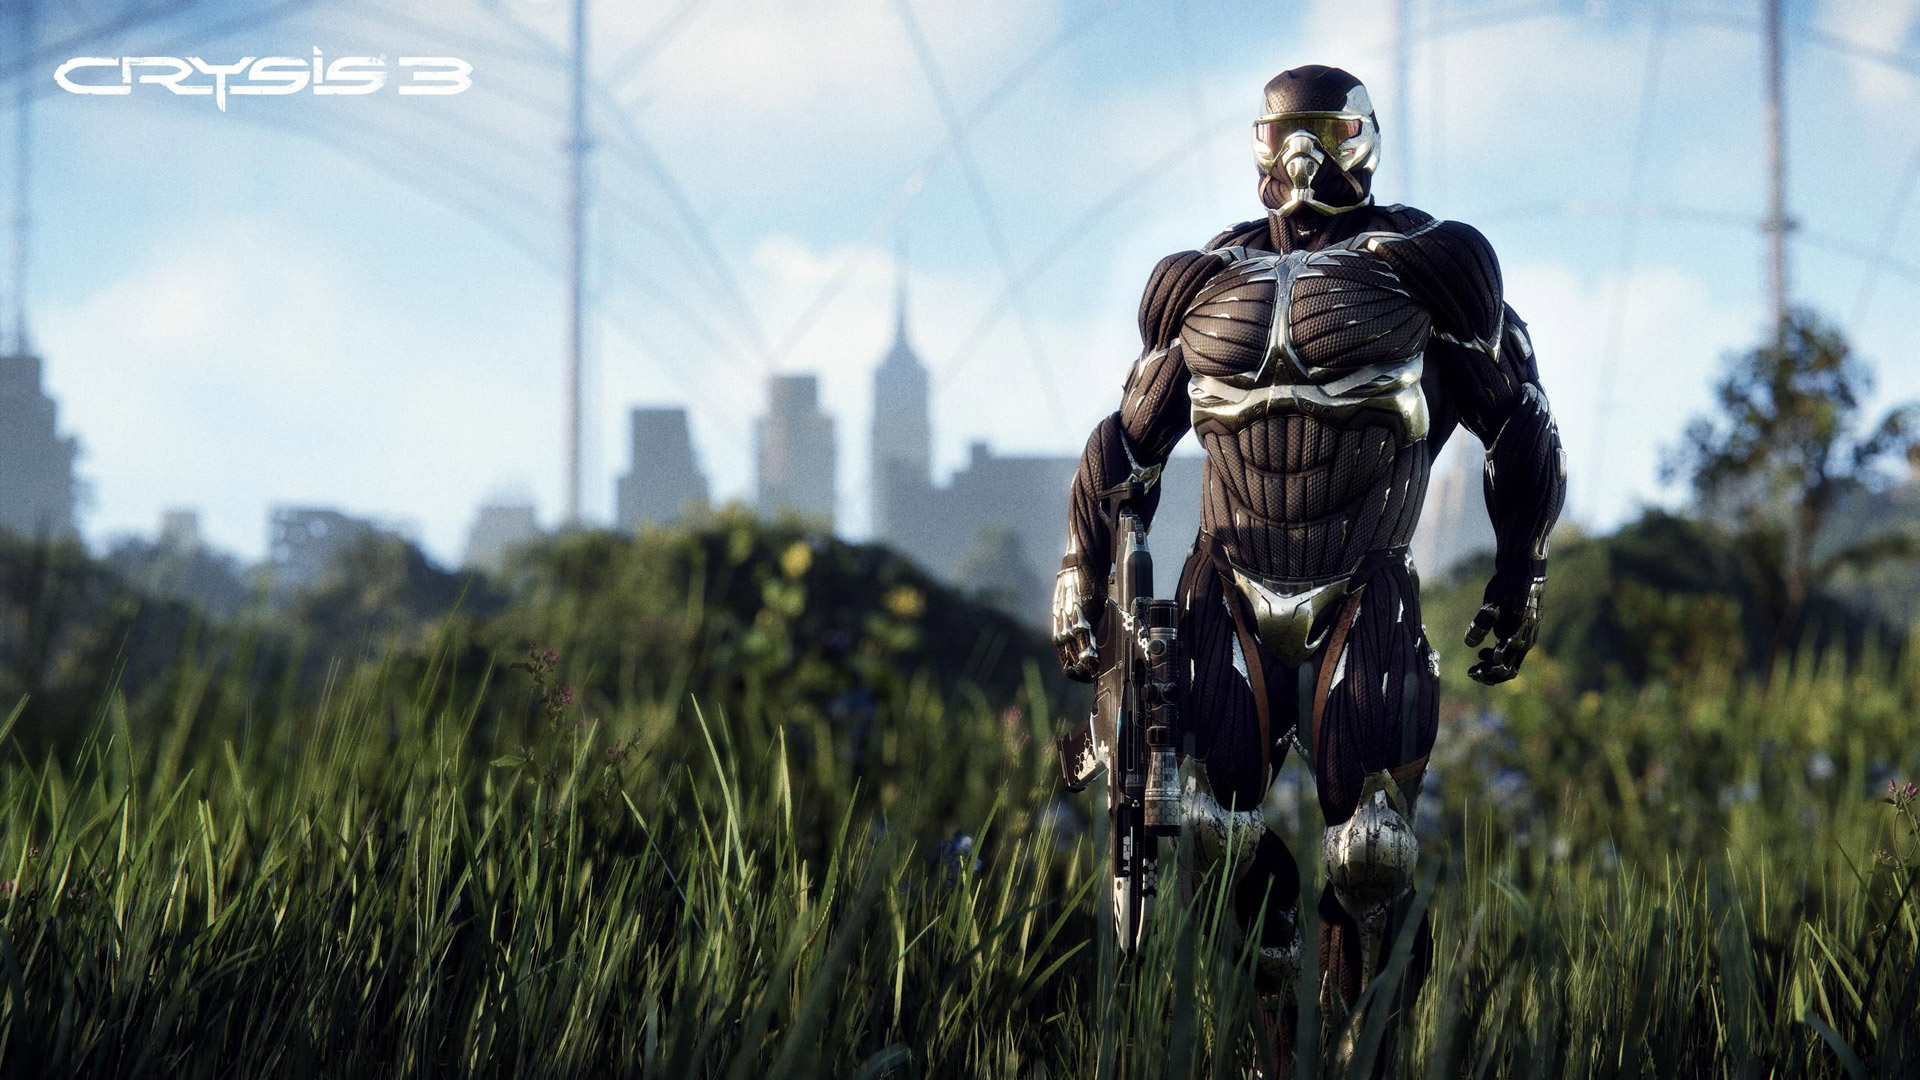 Crysis 3 Wallpaper in 1920x1080